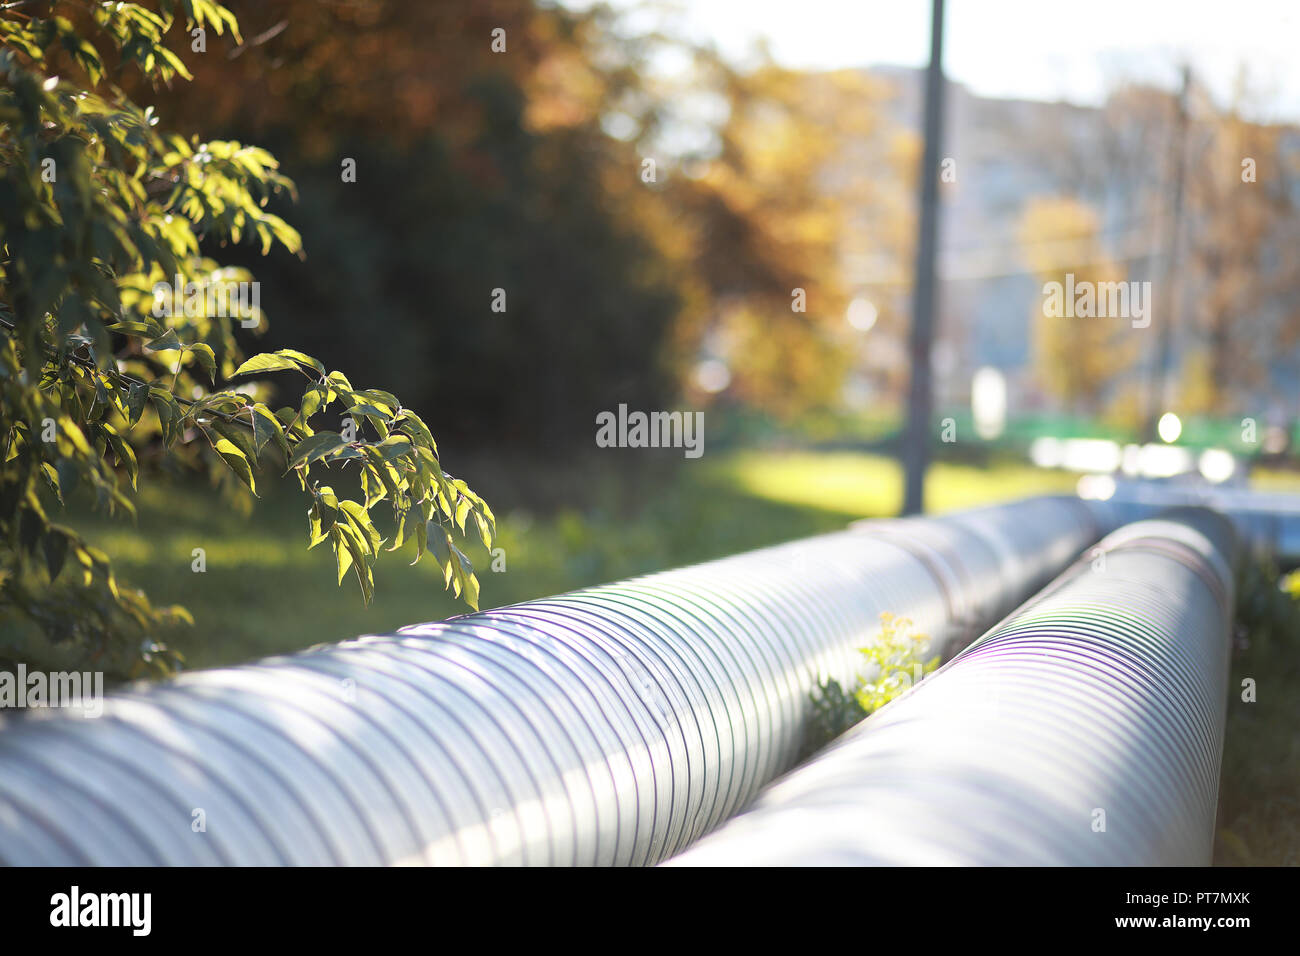 Industrial pipes on street construction - Stock Image